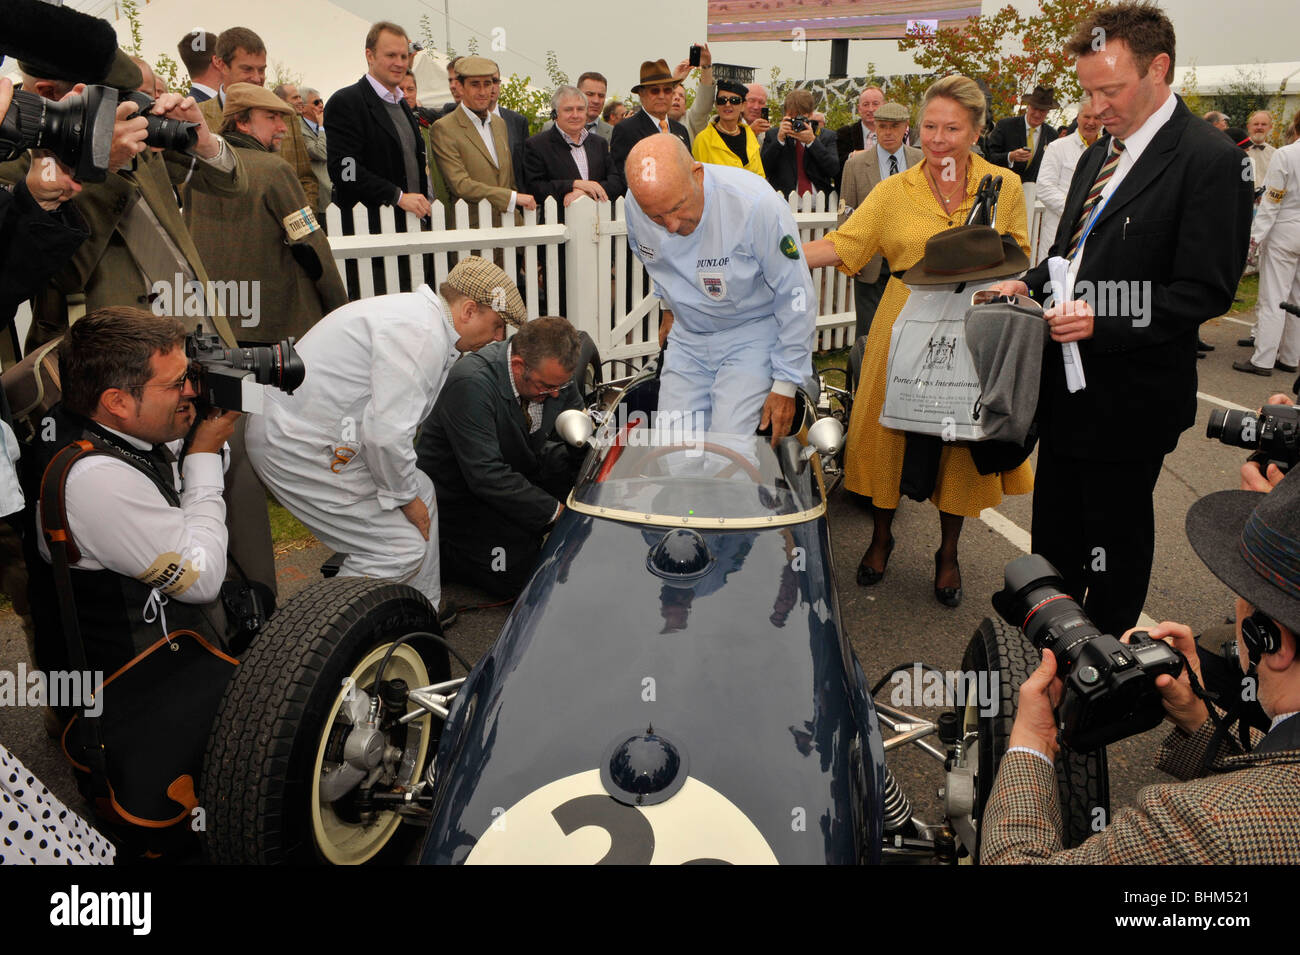 Sir Stirling Moss OBE at Goodwood Revival 2009 with his wife Susie celebrating his 80th birthday. - Stock Image